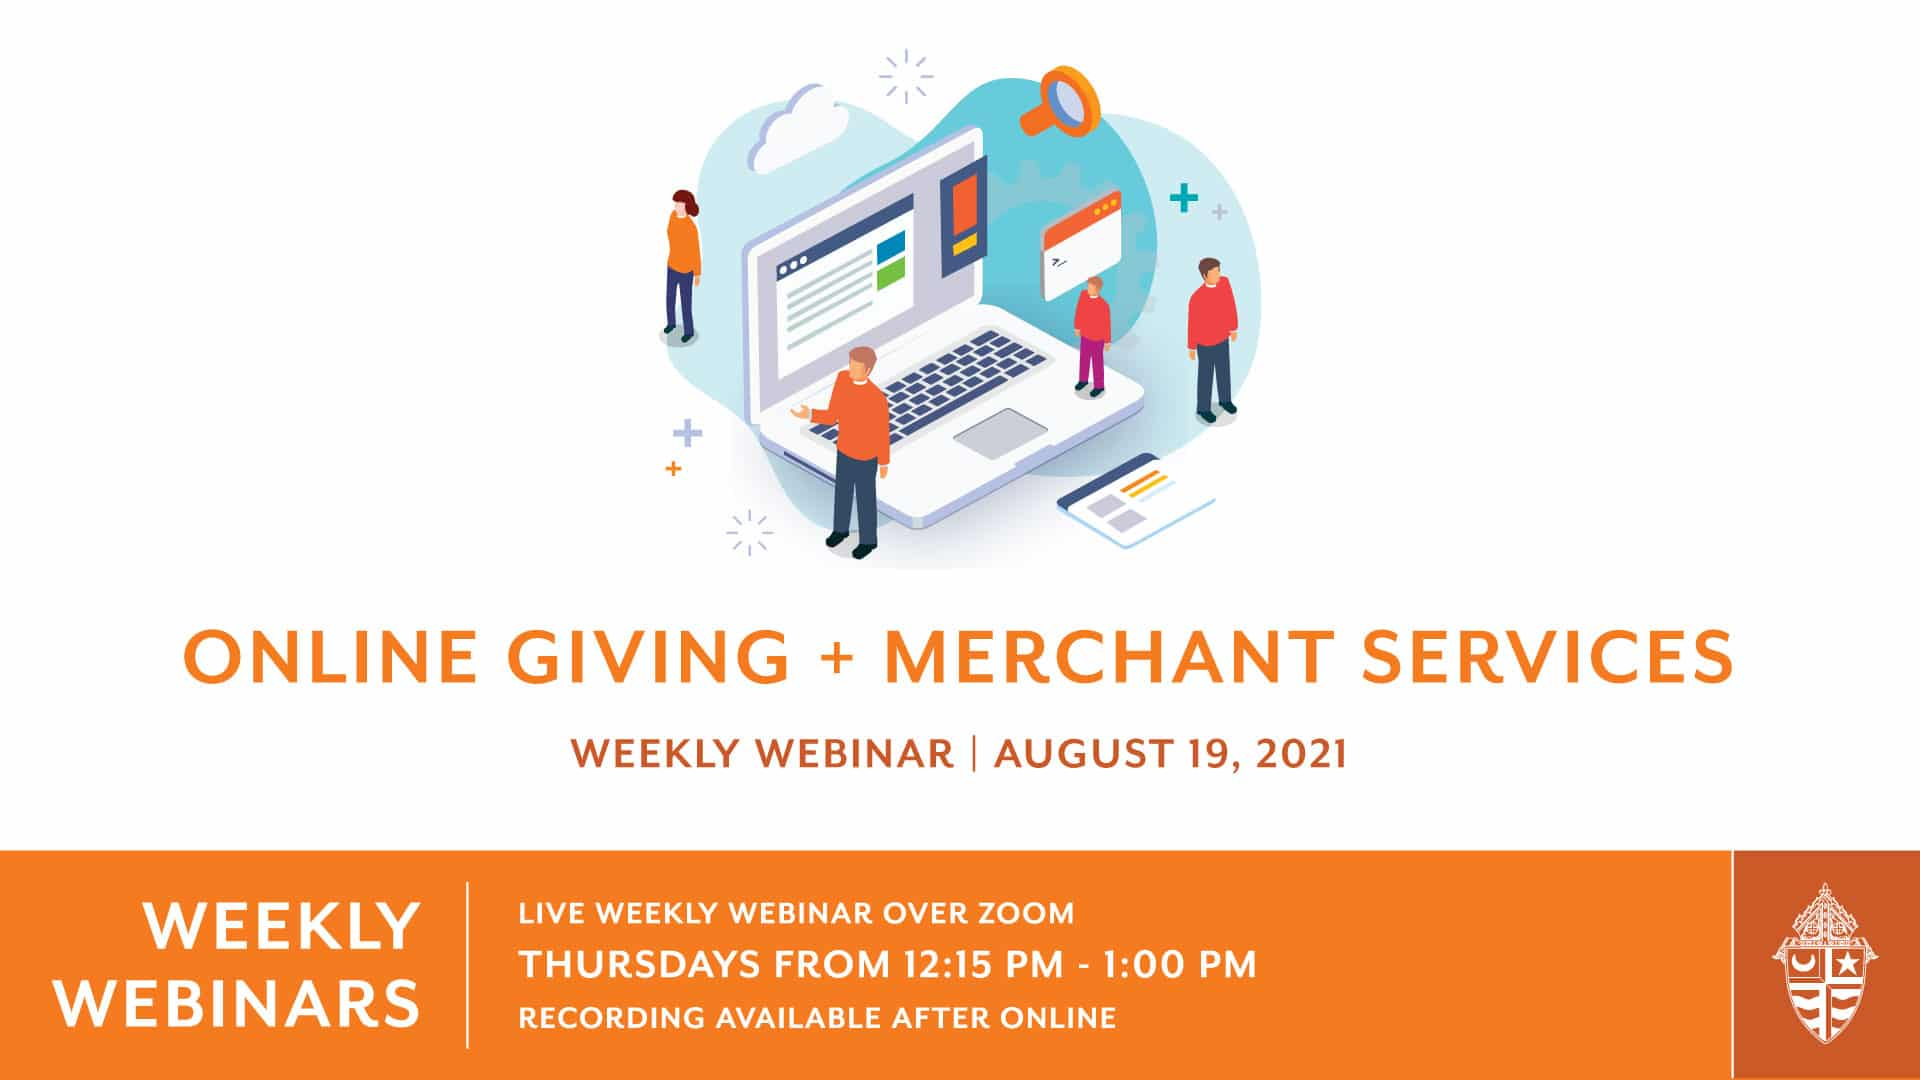 Weekly Webinar: Online Giving and Merchant Services